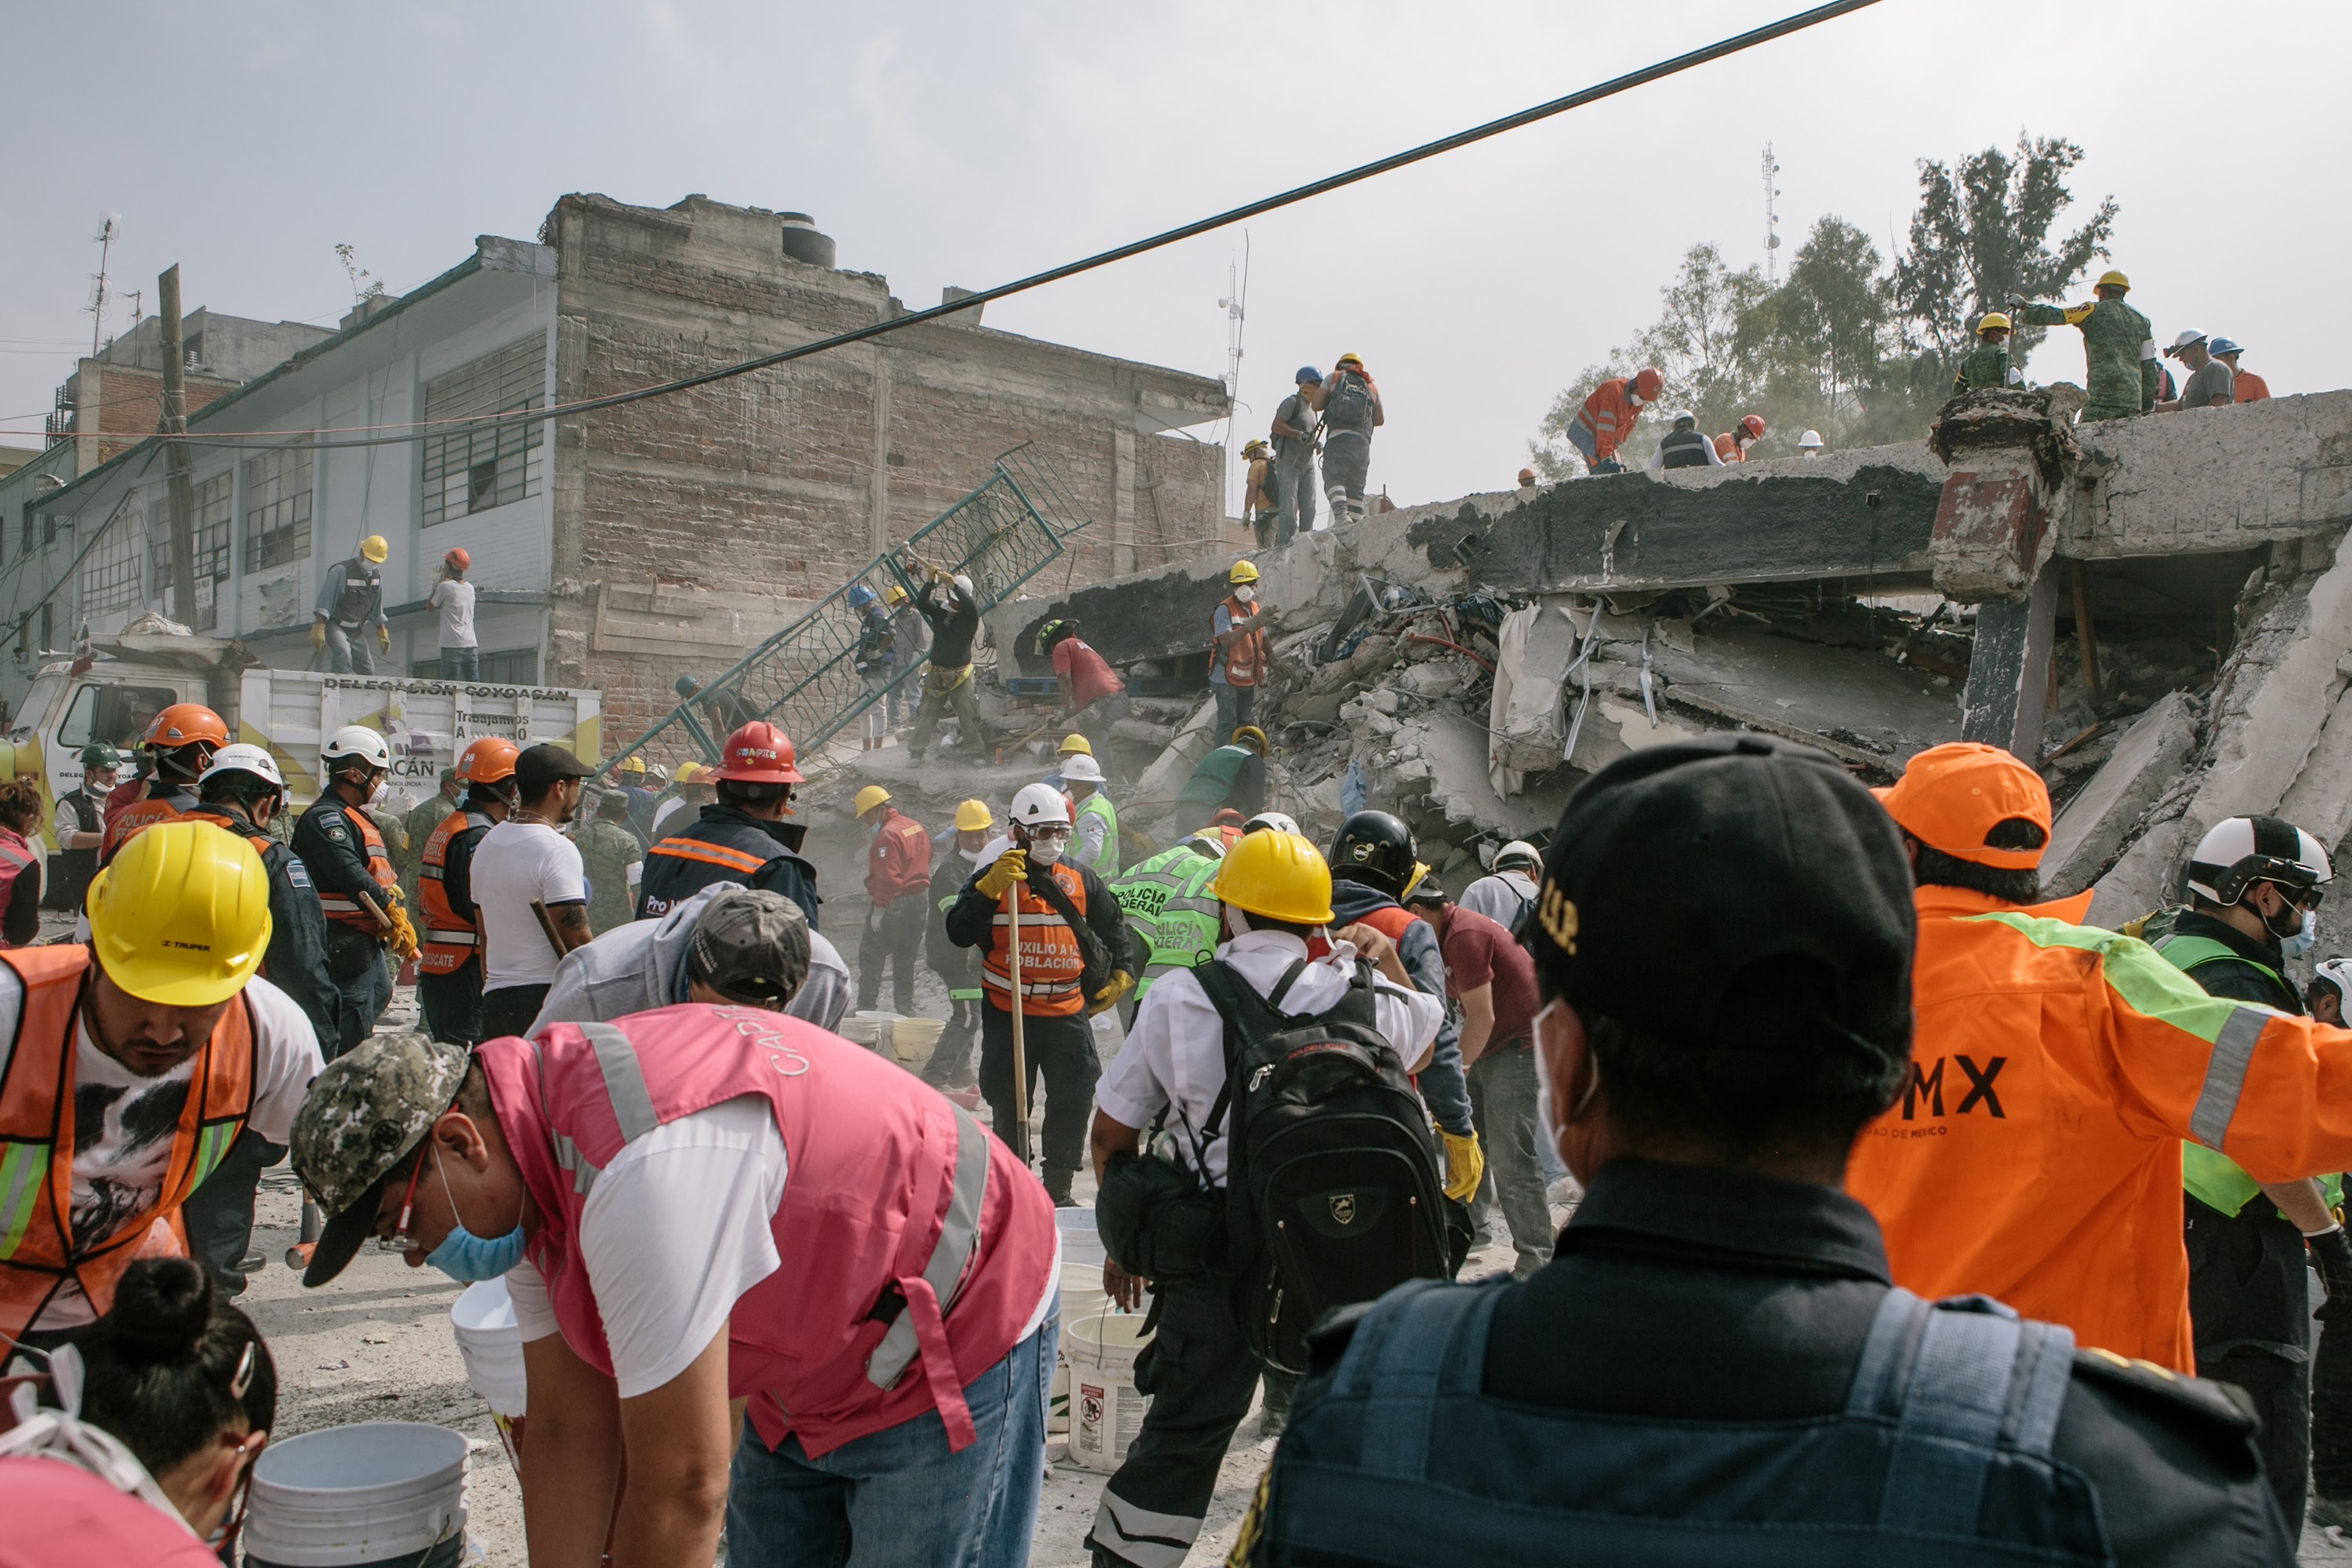 Volunteers, military, police, and city rescue workers dig through the rubble of a fallen textile factory in the Obrera neighborhood of Mexico City on Wednesday Sept. 20, 2017 a day after an earthquake collapsed many buildings in the city. There are still suspected survivors inside.   © Meghan Dhaliwal 2017 meghan.k.dhaliwal@gmail.com